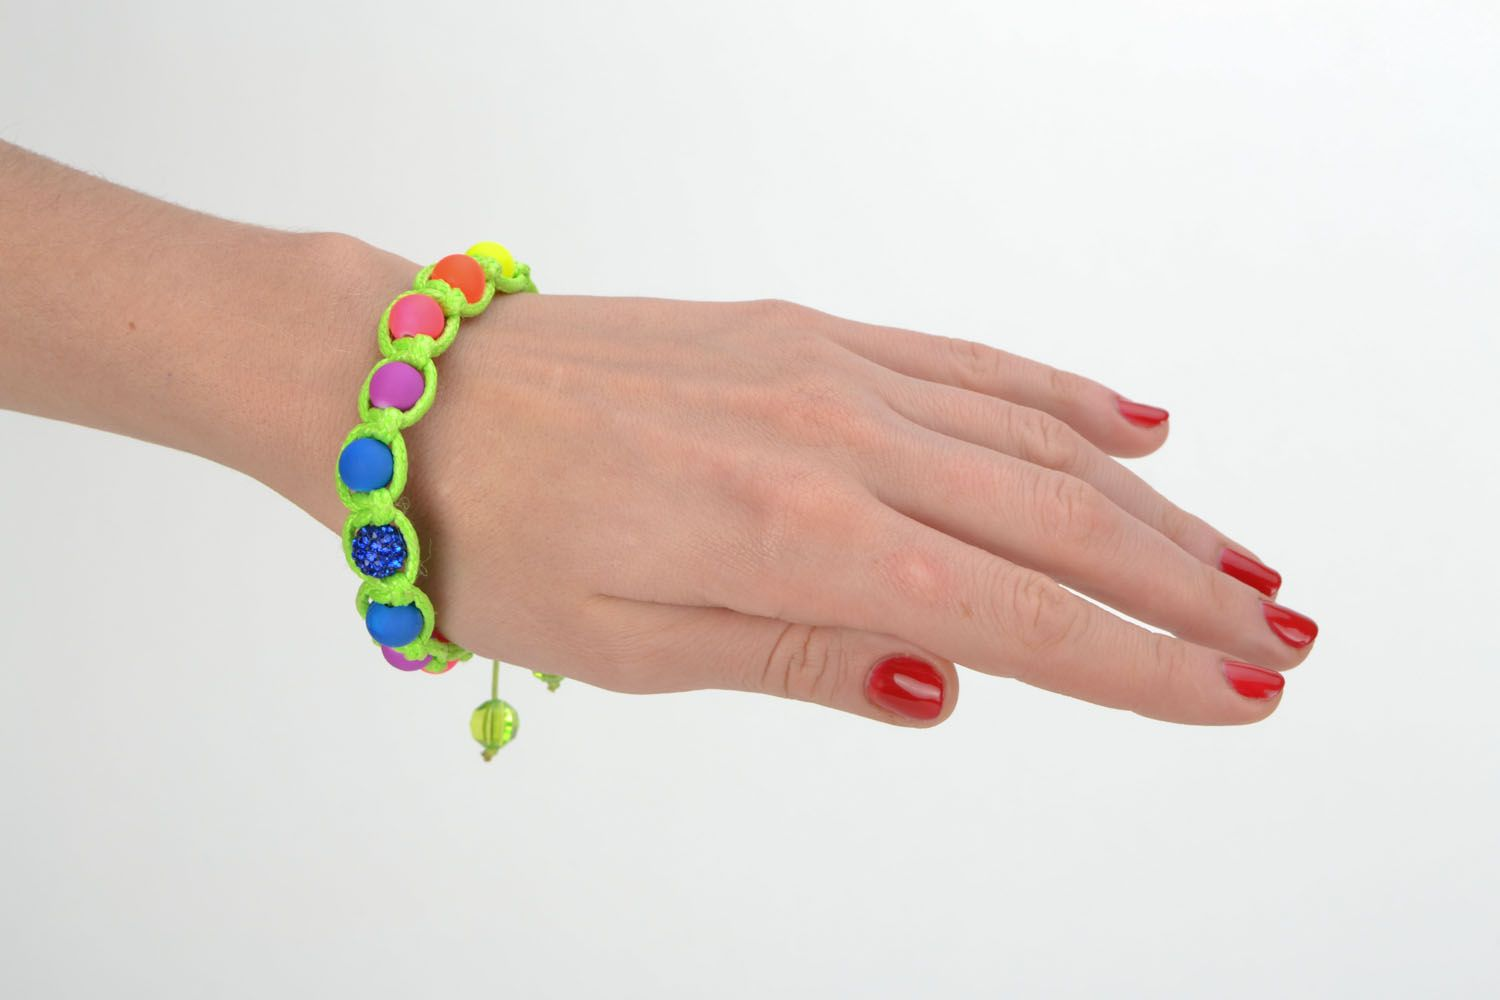 Bracelet woven of colorful beads photo 1